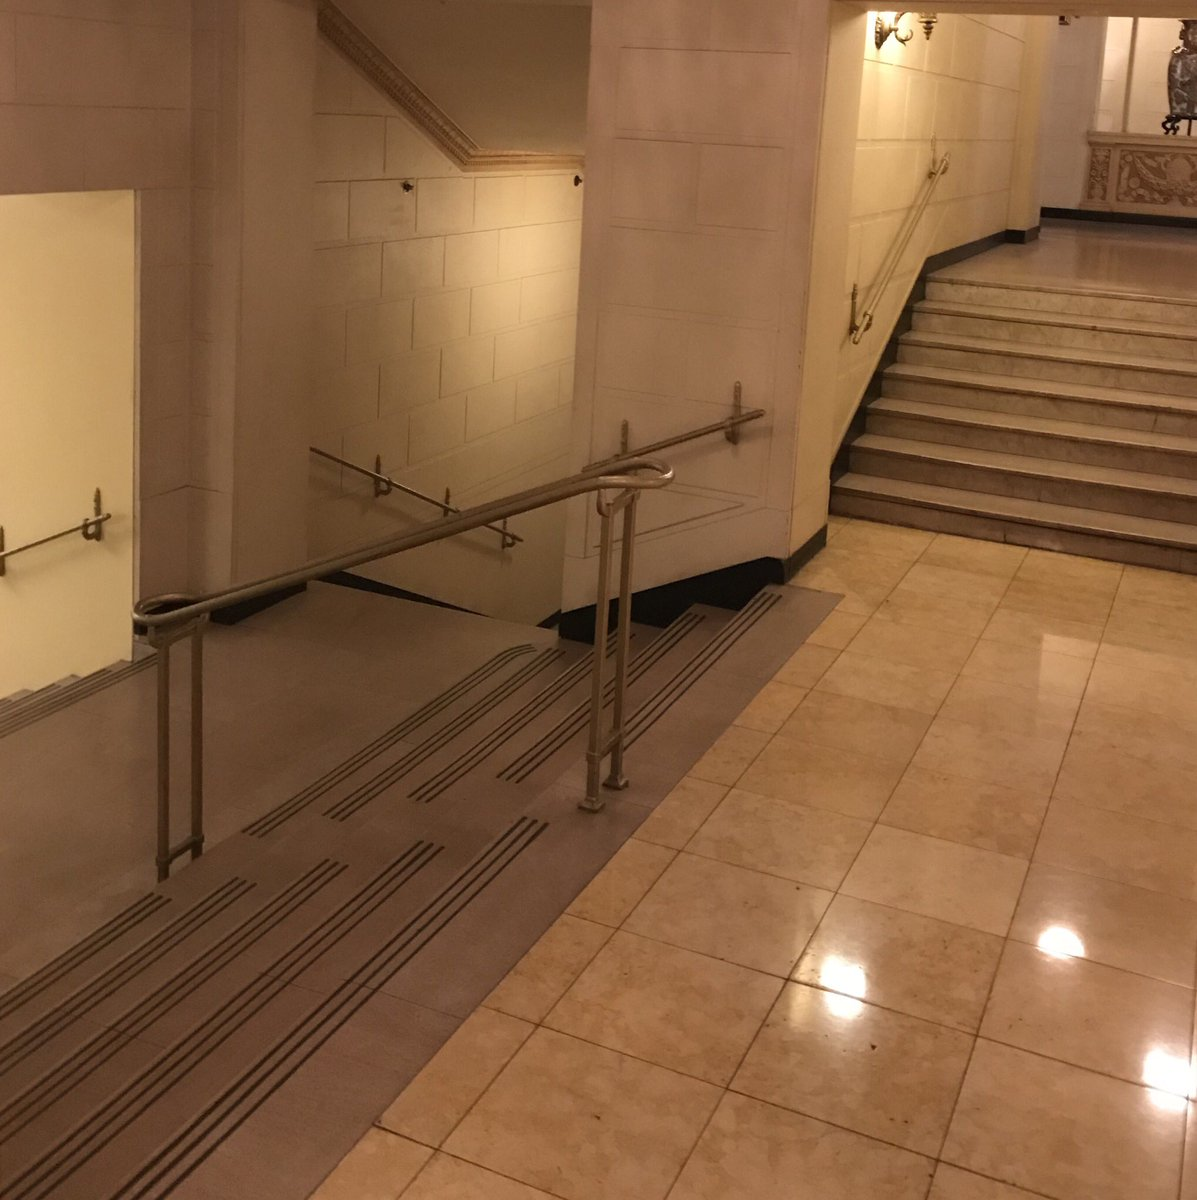 Jacques haba on twitter whats happening you tell me twitter smooth marble tile hallways with multiple stairwells the landing has stairways going down with options doublecrazyfo Images